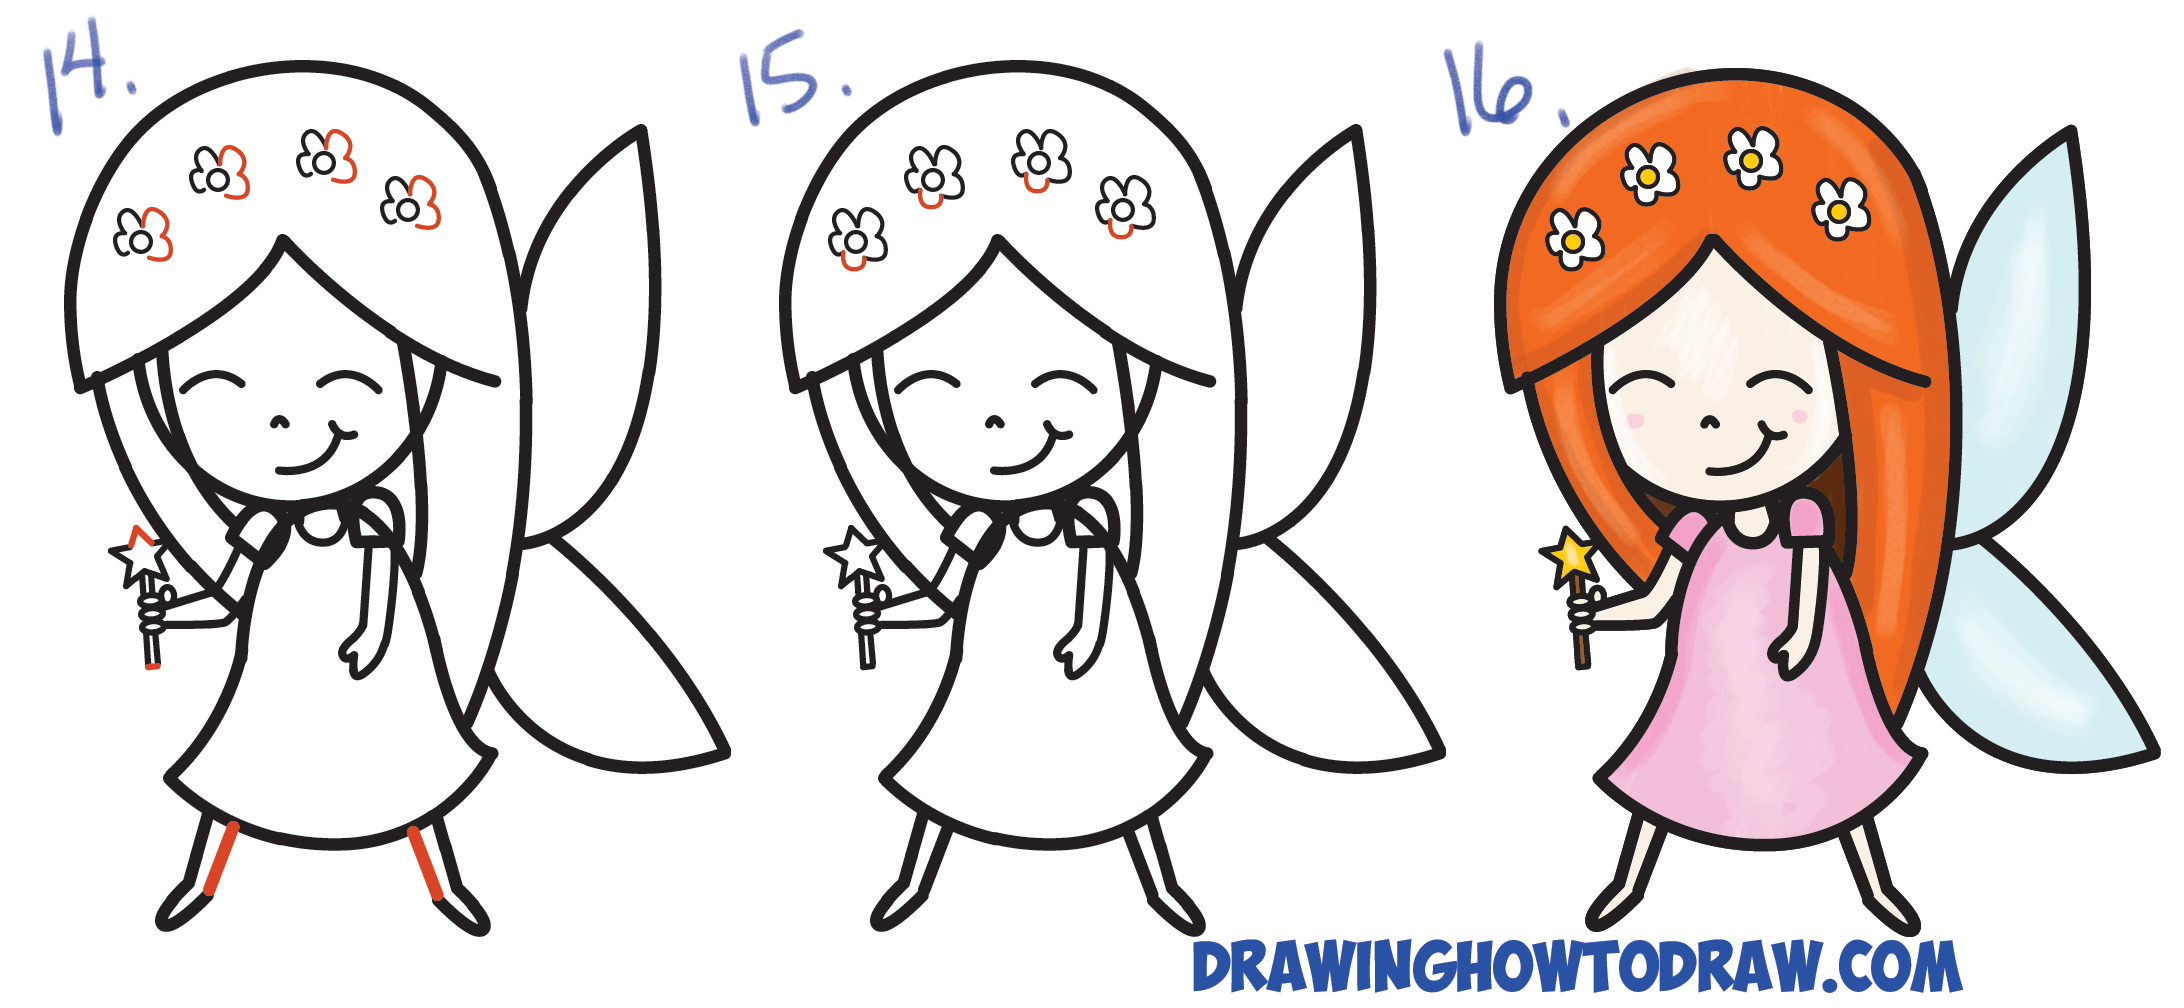 Learn How to Draw a Cute Cartoon Fairy (Kawaii Chibi) from Letter 'K' Simple Steps Drawing Lesson for Beginners